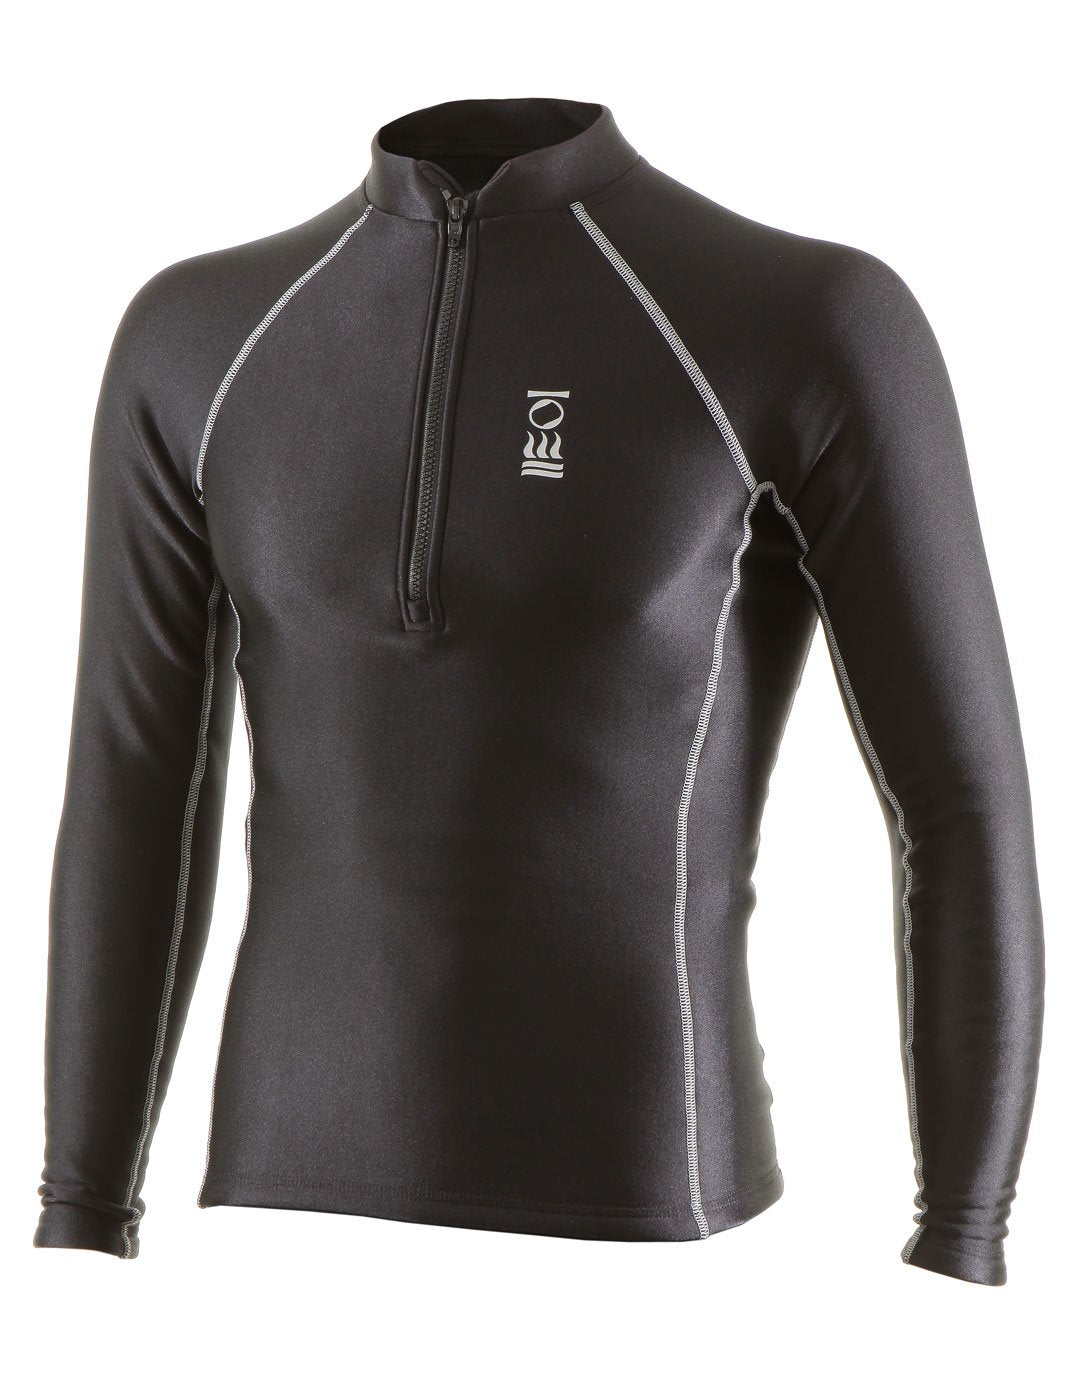 Image of Fourth Element Mens Thermocline Zipped Long Sleeve Top